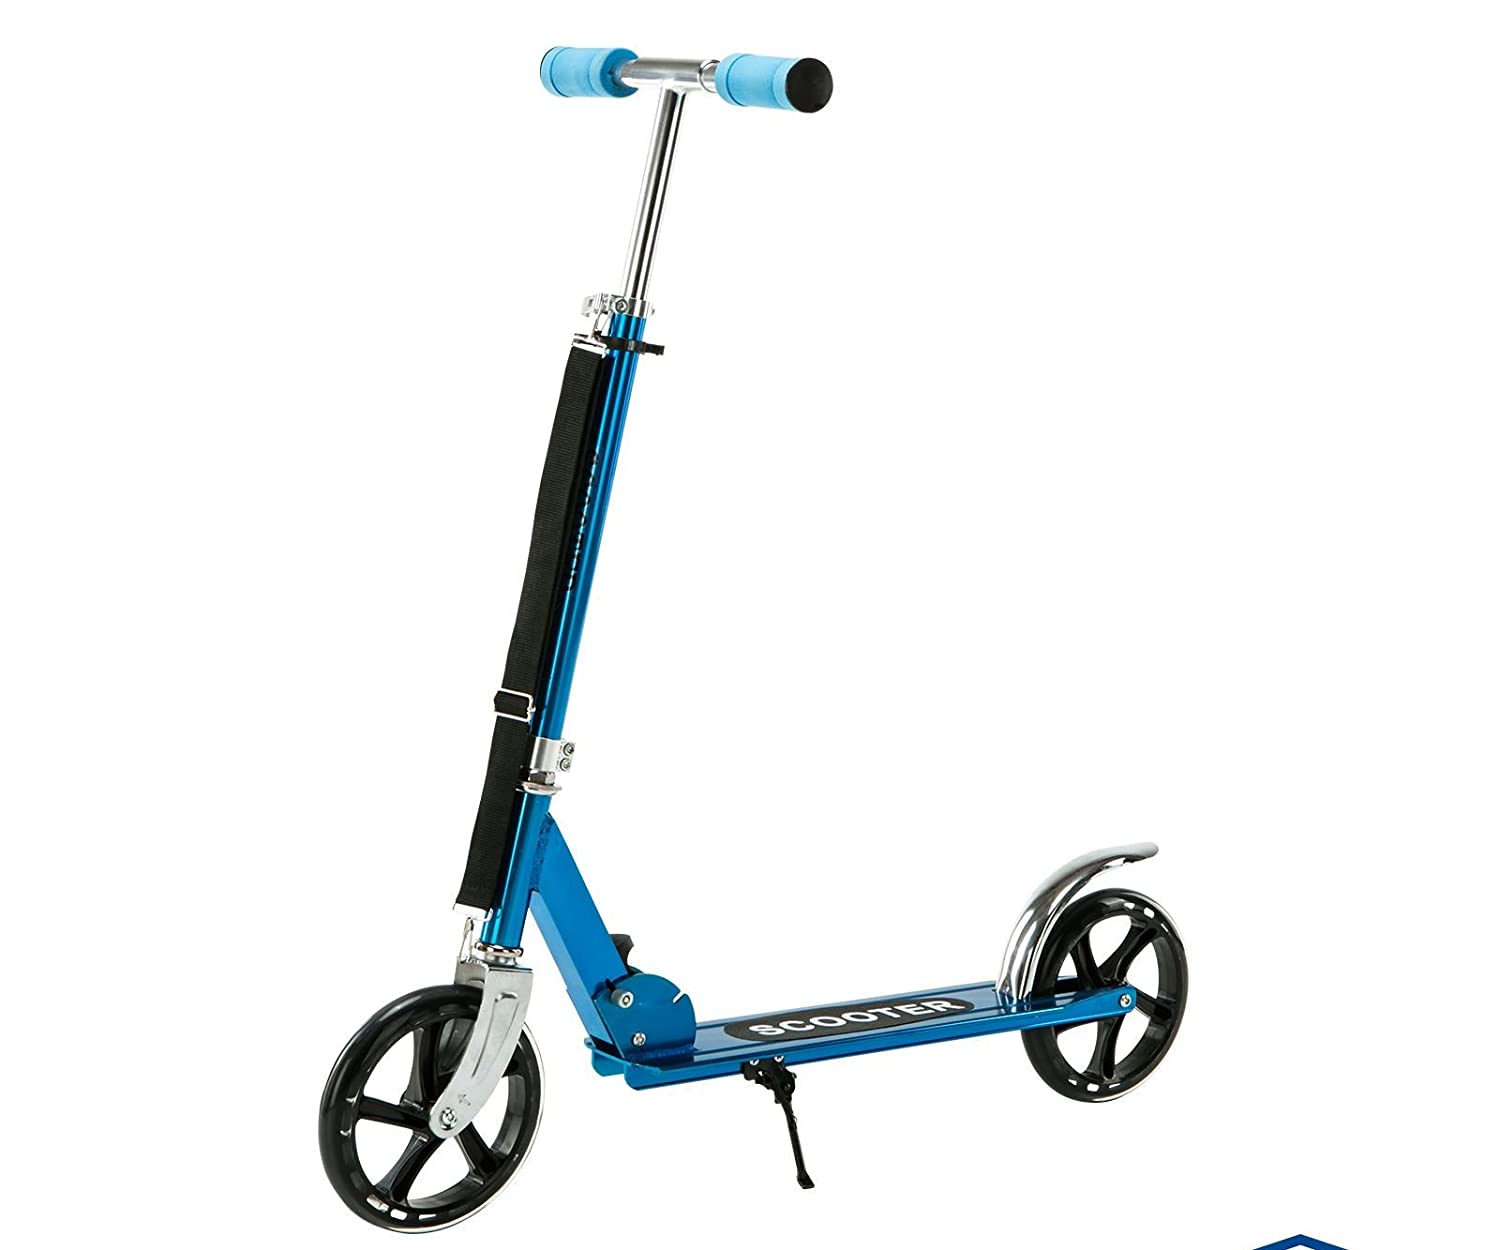 New Folding Kick Scooter 2 Wheels Outdoor Kid/Adult Ride Sport Exercise Scooter Blue